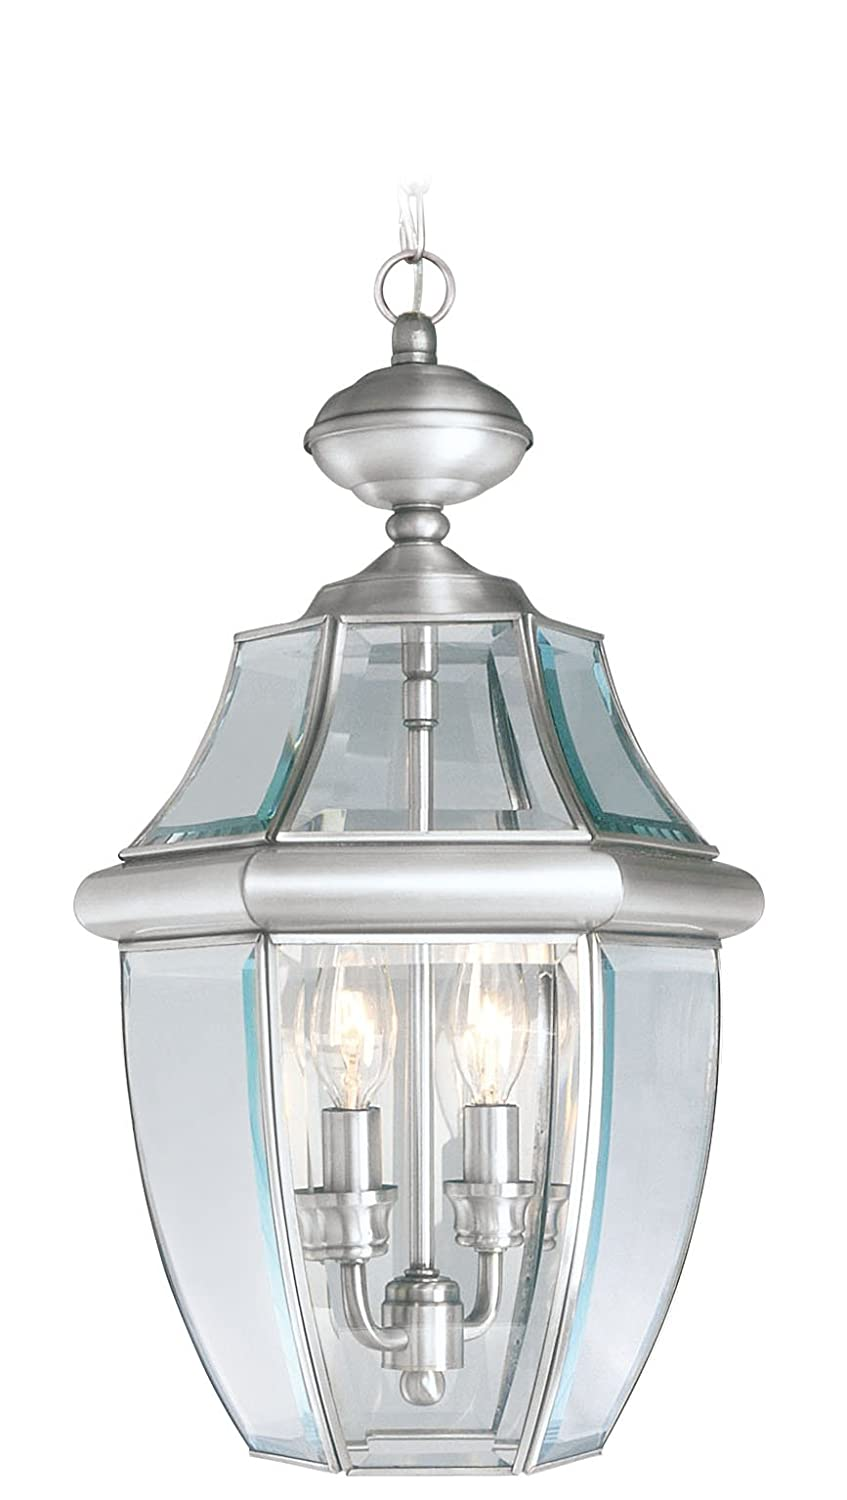 Livex lighting 2255 91 monterey 2 light outdoor brushed nickel livex lighting 2255 91 monterey 2 light outdoor brushed nickel finish solid brass hanging lantern with clear beveled glass pendant porch lights amazon aloadofball Choice Image